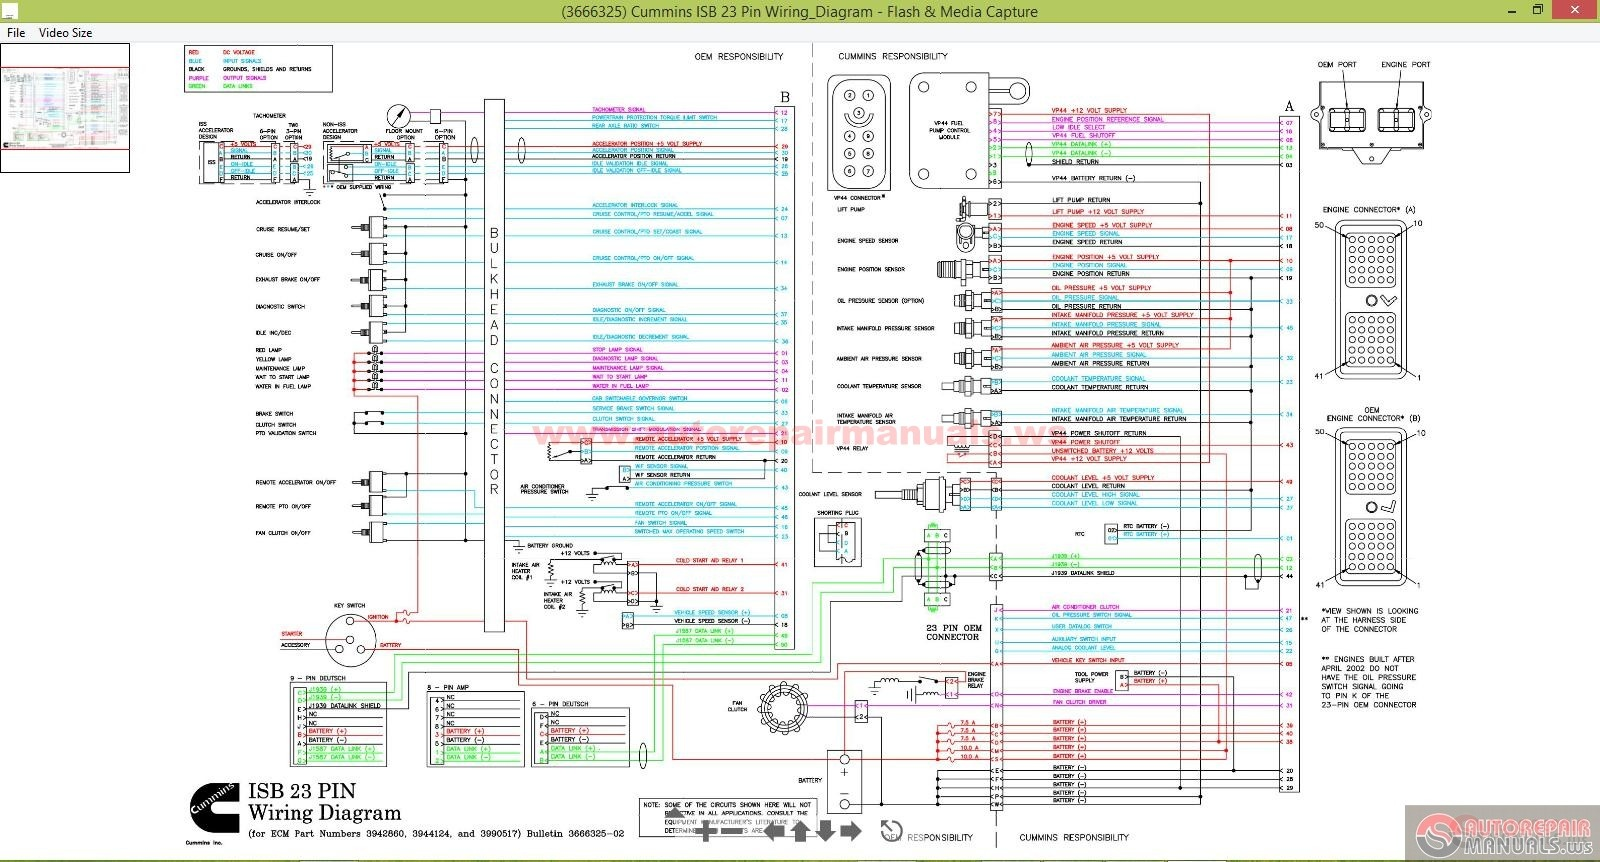 401c0acc 84cf 4b84 91fc 17fd94b57f7d_Cummins_ISB_23_Pin_WiringDiagram 2008 freightliner m2 business class with a cummins 8 3l freightliner ecm wiring harness at webbmarketing.co